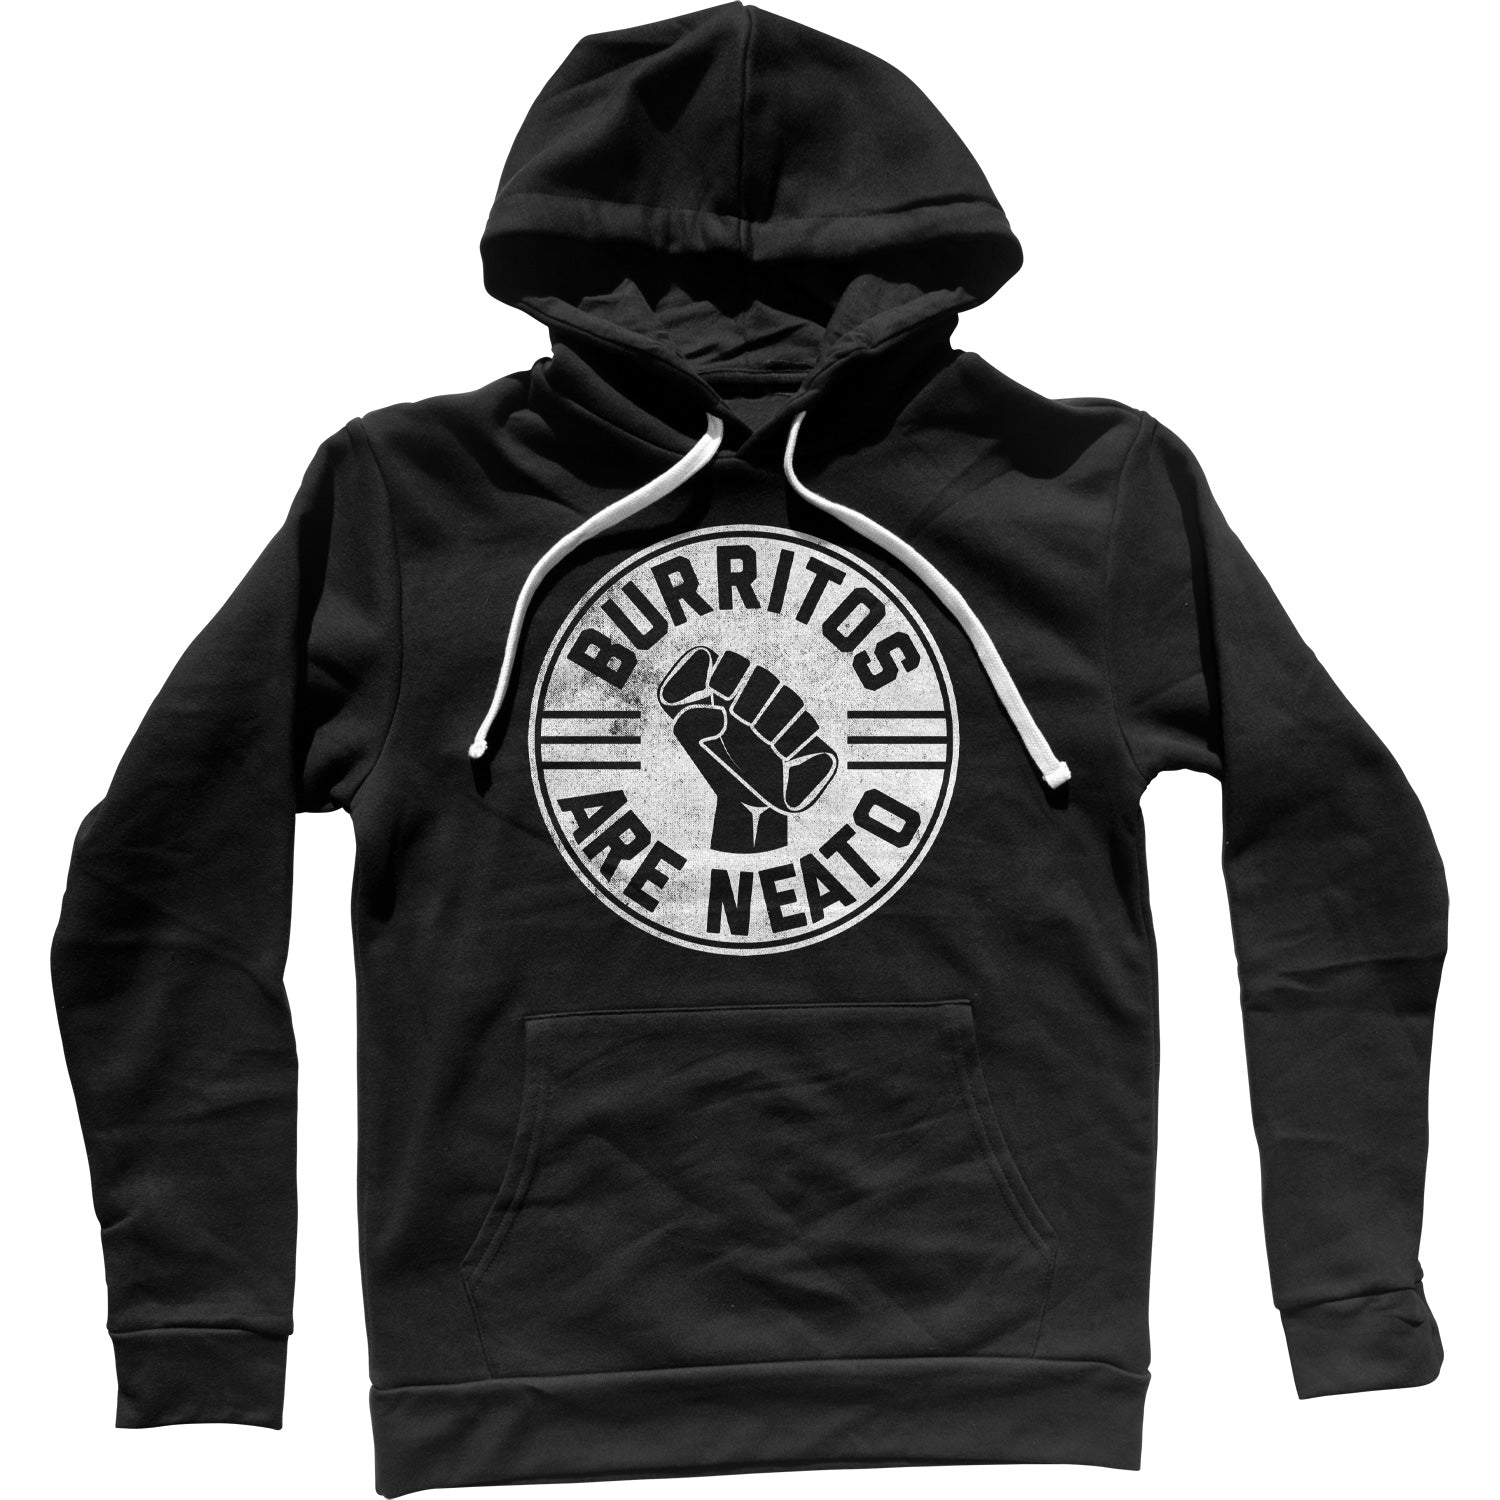 Burritos Are Neato Unisex Hoodie